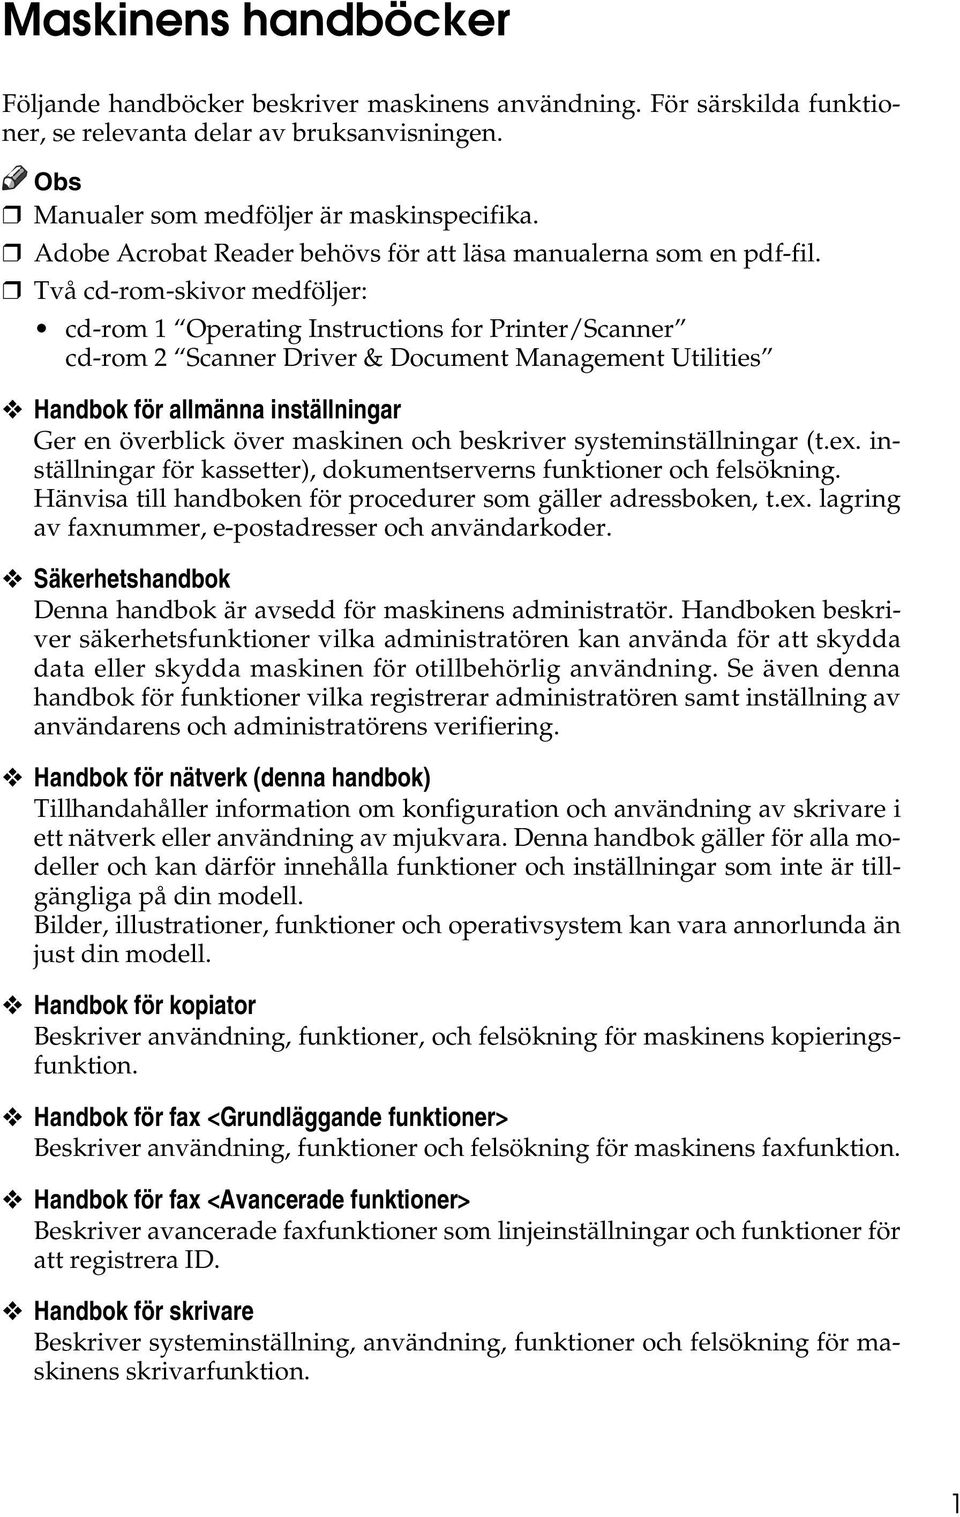 Två cd-rom-skivor medföljer: cd-rom 1 Operating Instructions for Printer/Scanner cd-rom 2 Scanner Driver & Document Management Utilities Handbok för allmänna inställningar Ger en överblick över